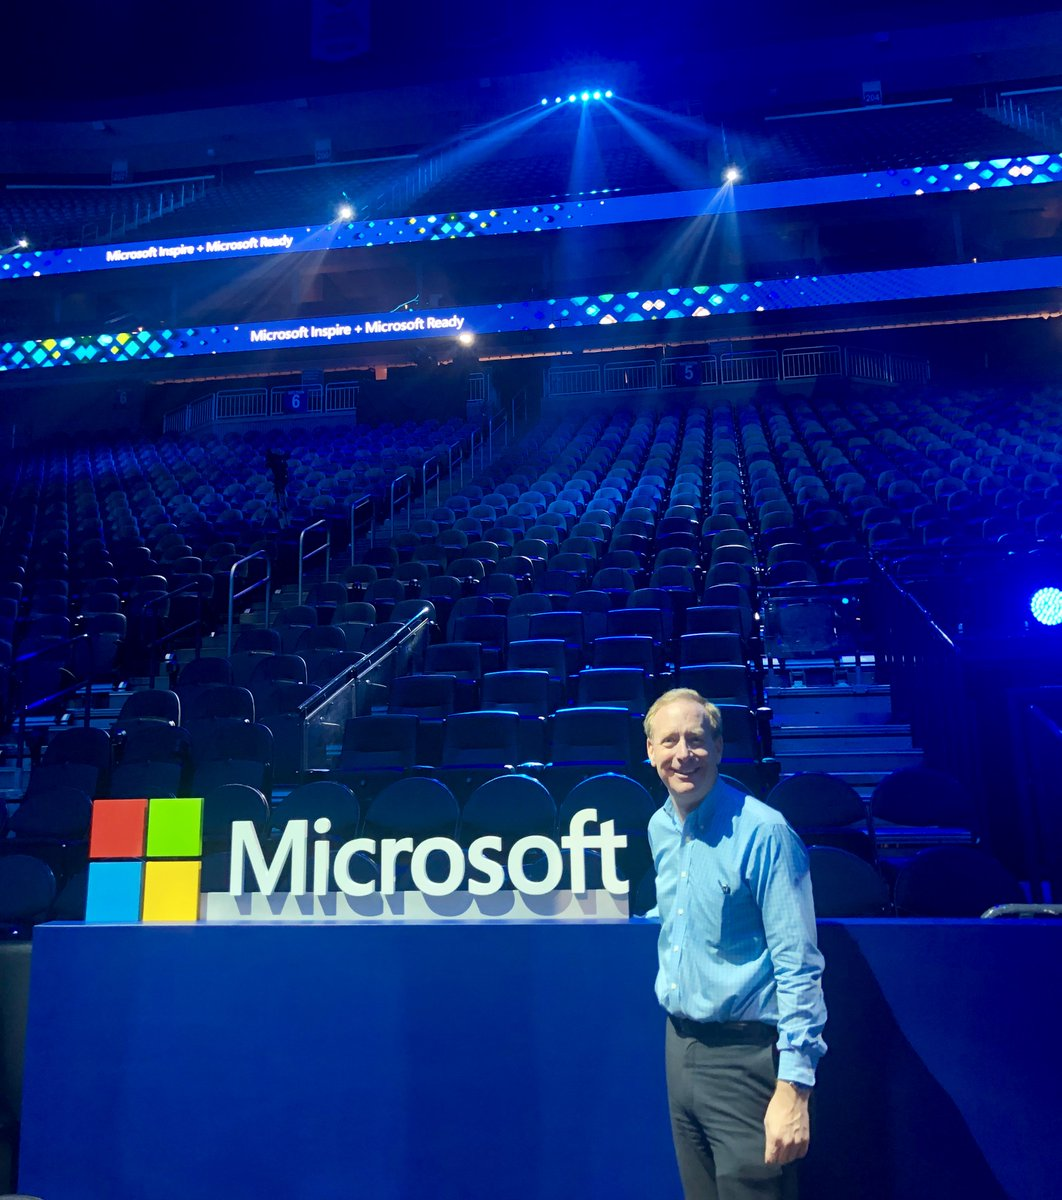 I just finished rehearsals, I'm so excited for this arena to be filled tomorrow with our partners and employees for #MSInspire and #MSReady!